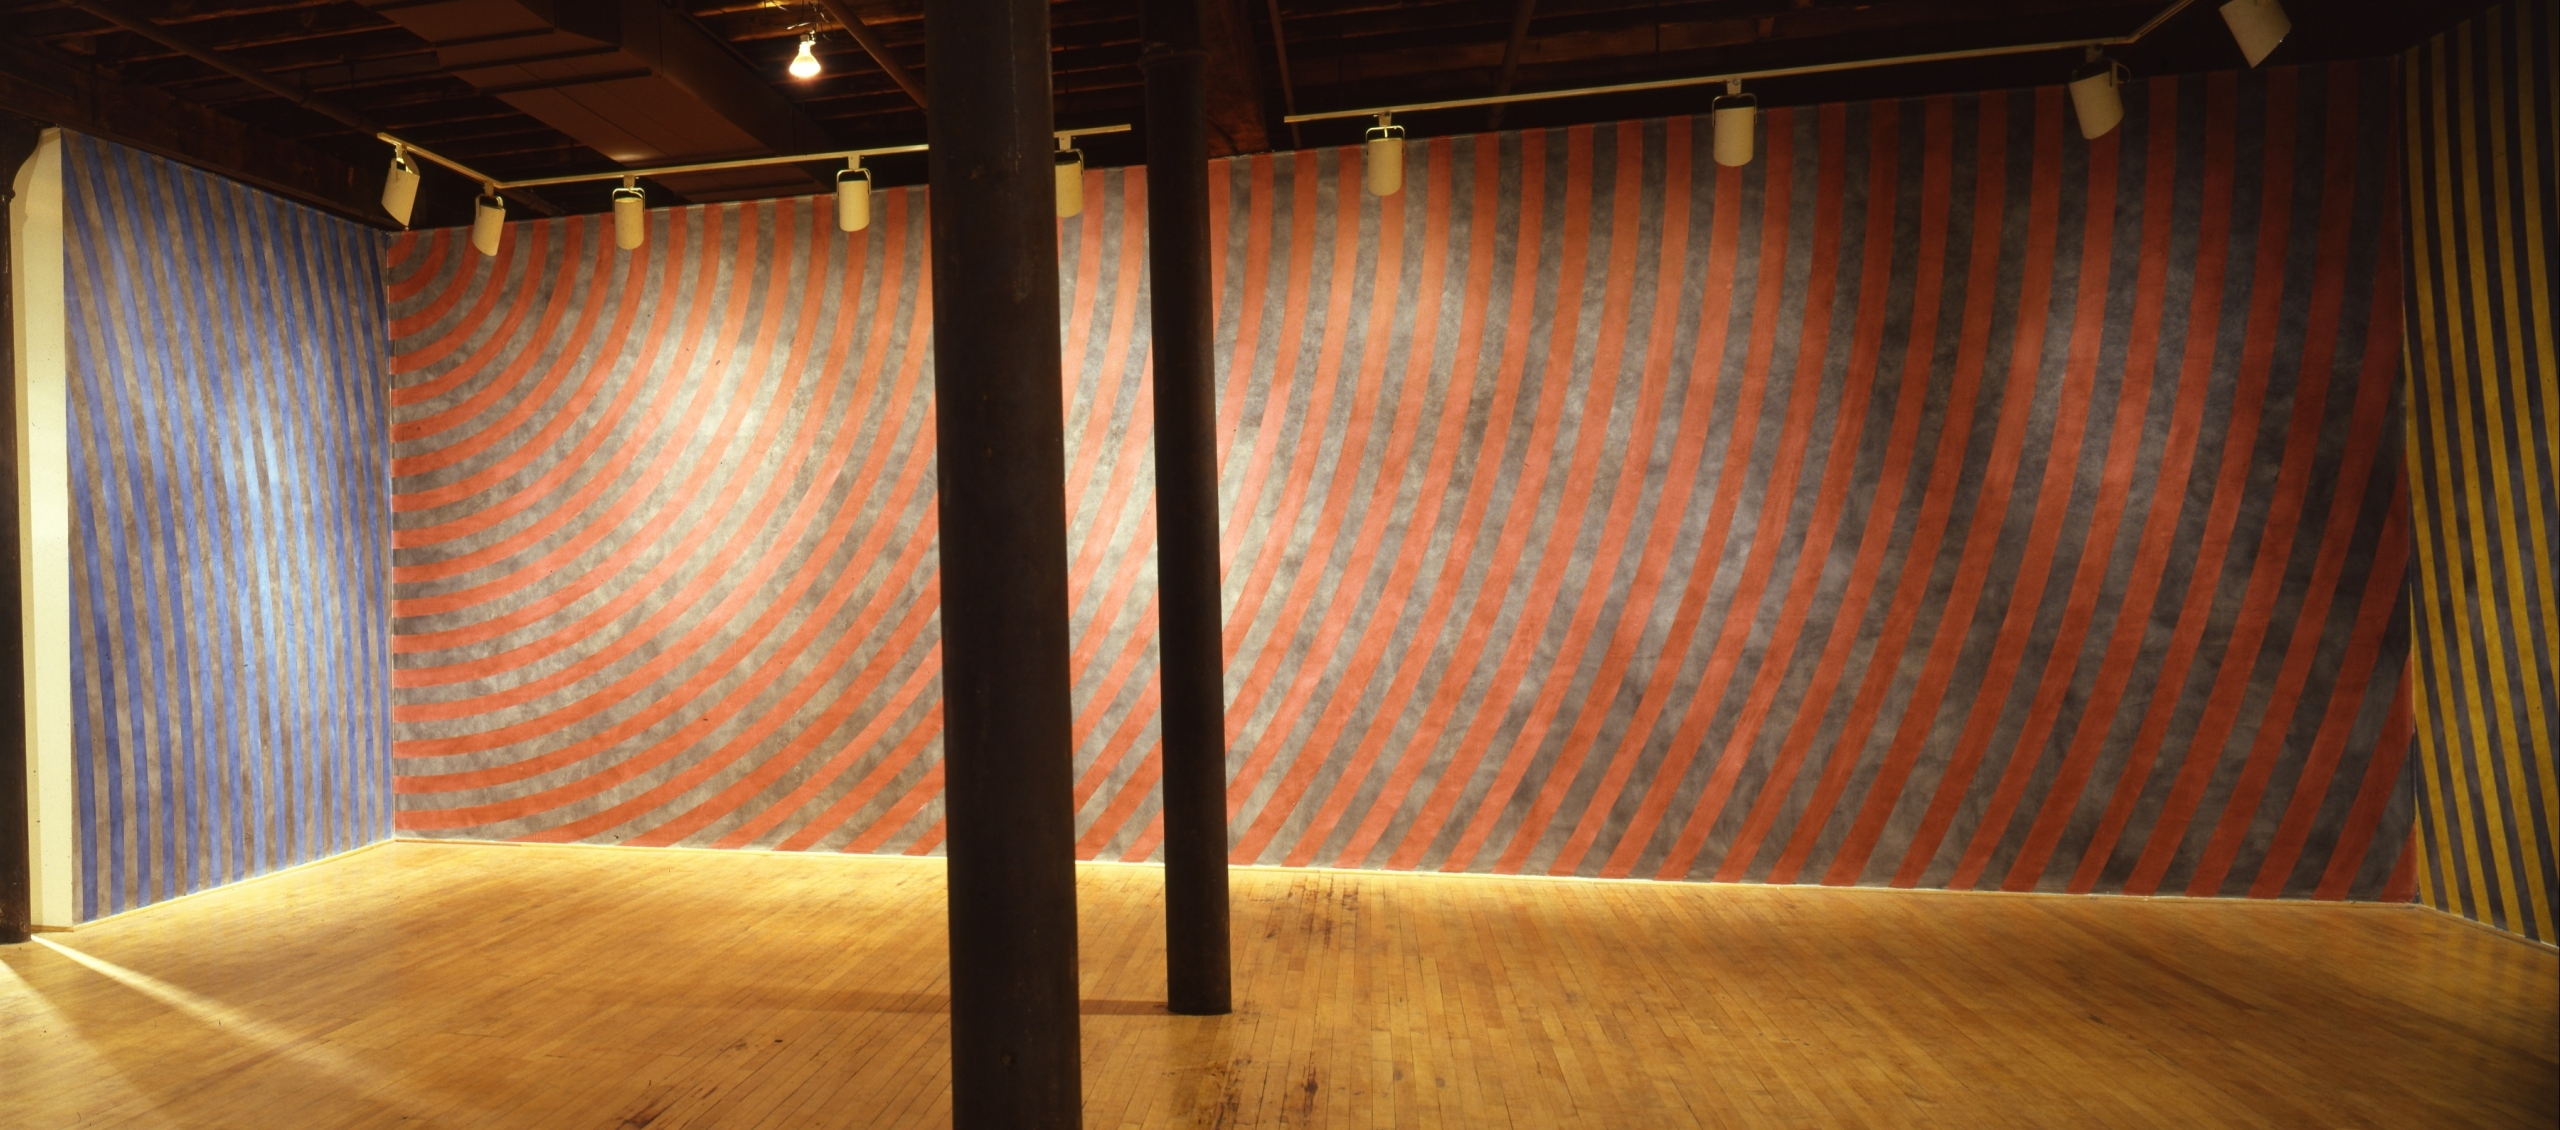 Installation view at Rhona Hoffman Gallery, Sol LeWitt, New Wall Paintings, 1986